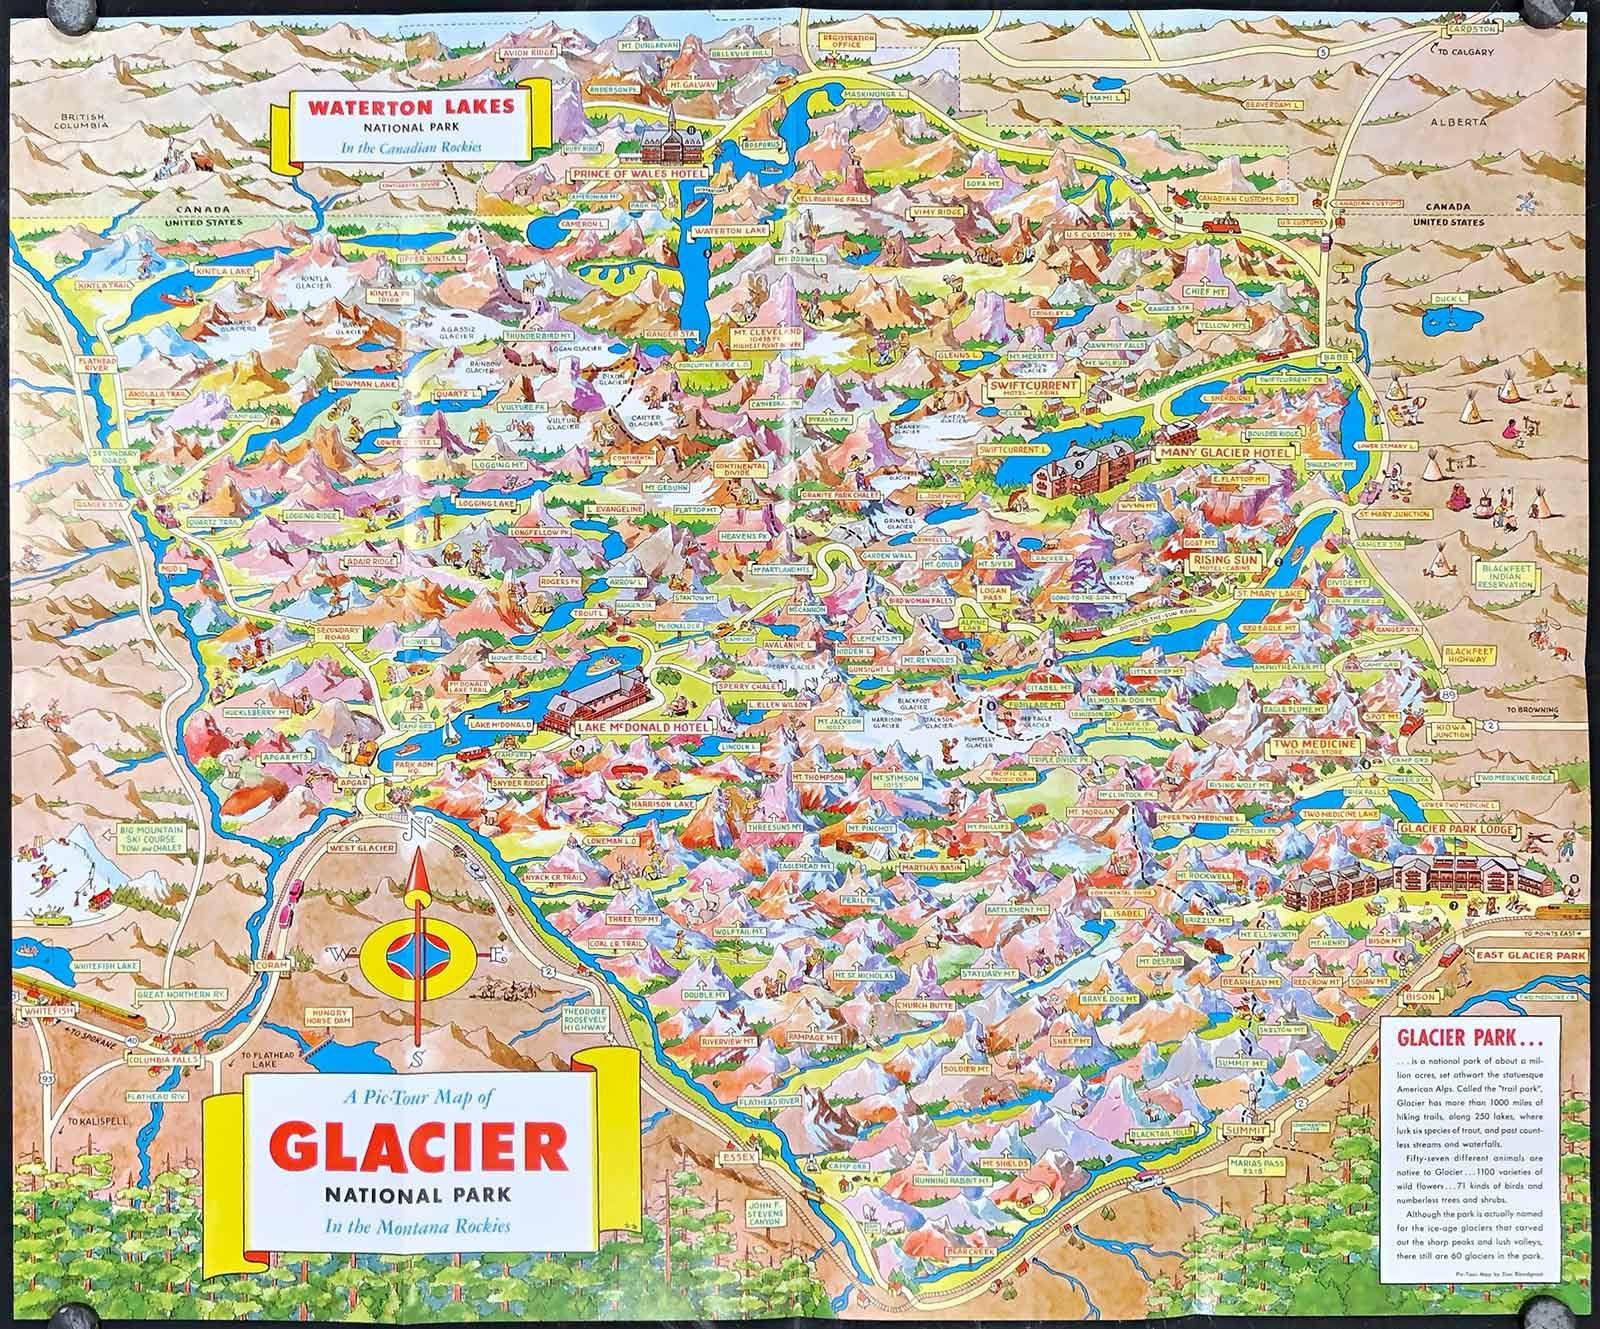 A Pic Tour Map of Glacier National Park In the Montana ... Glacier National Park Montana Map on montana big sky resort map, montana billings map, montana on a map, montana hot springs map, montana california map, montana mile marker map, montana city map, montana red lodge map, montana united states map, montana ennis map, montana wildlife map, montana continental divide trail map, montana yellowstone map, montana idaho map, montana camping map, montana zip code map, montana helena map, montana great falls map, montana bozeman map,